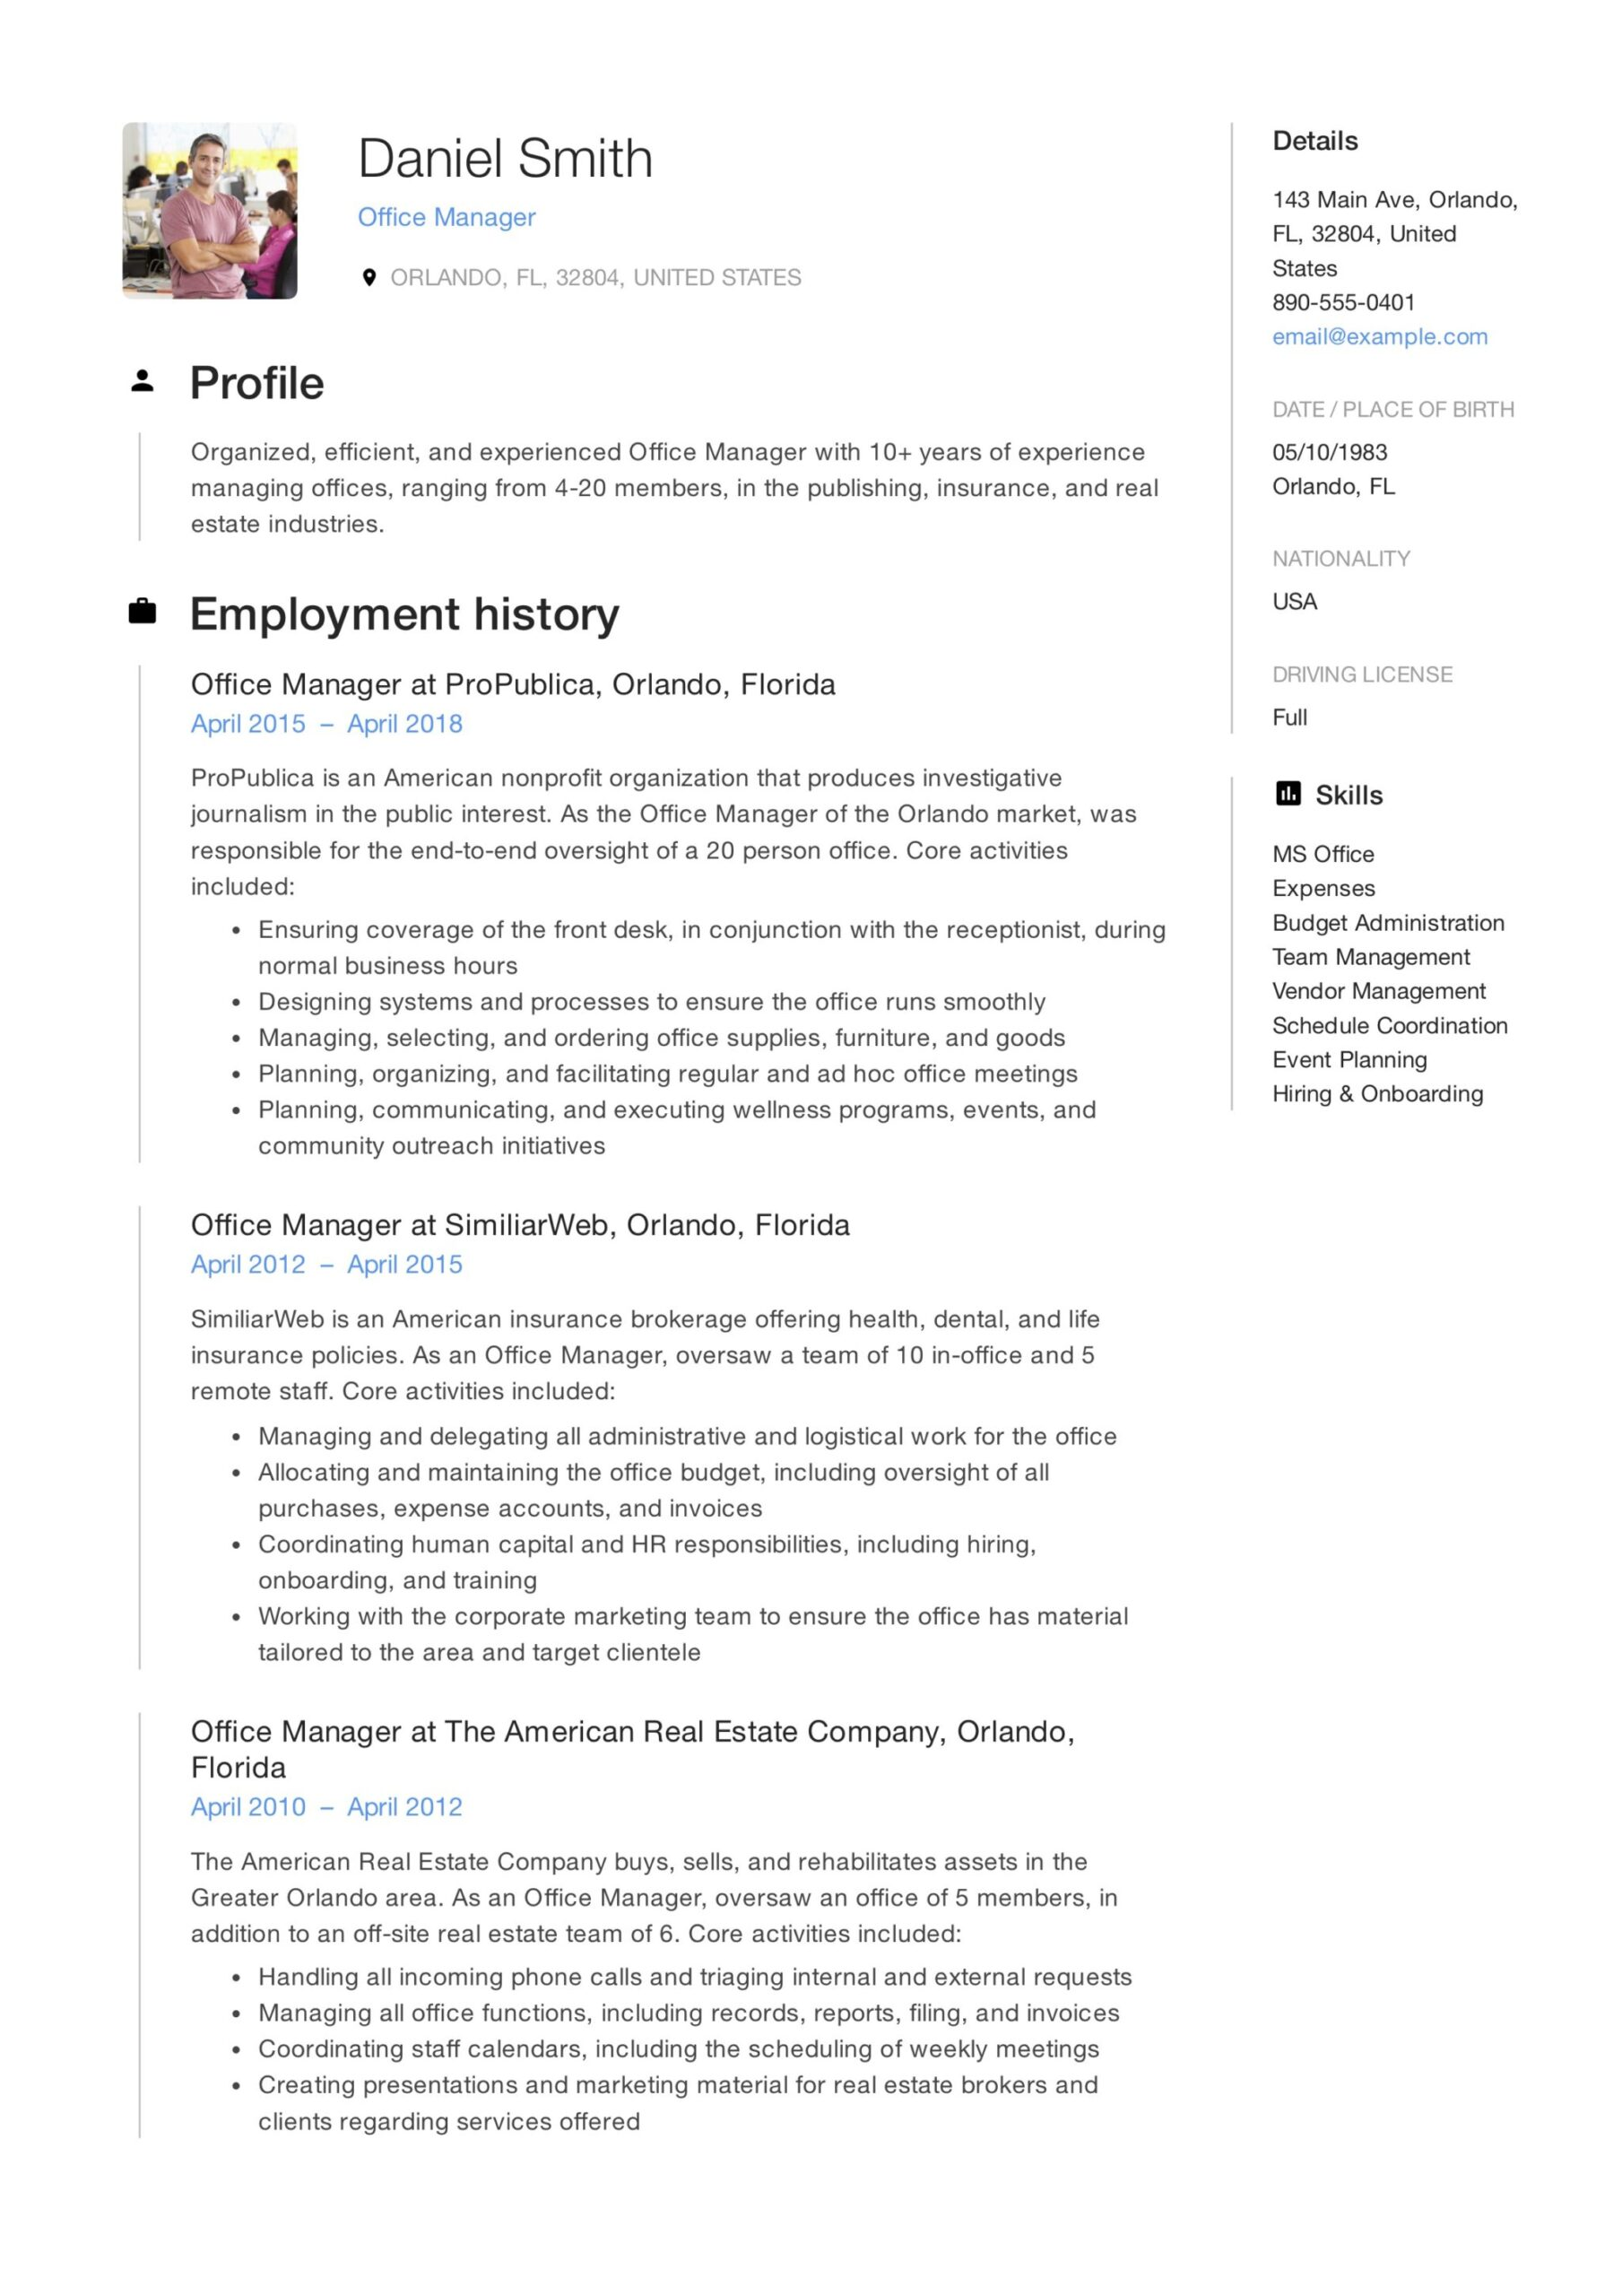 office manager resume guide samples pdf summary examples sample associate creative Resume Office Manager Resume Summary Examples